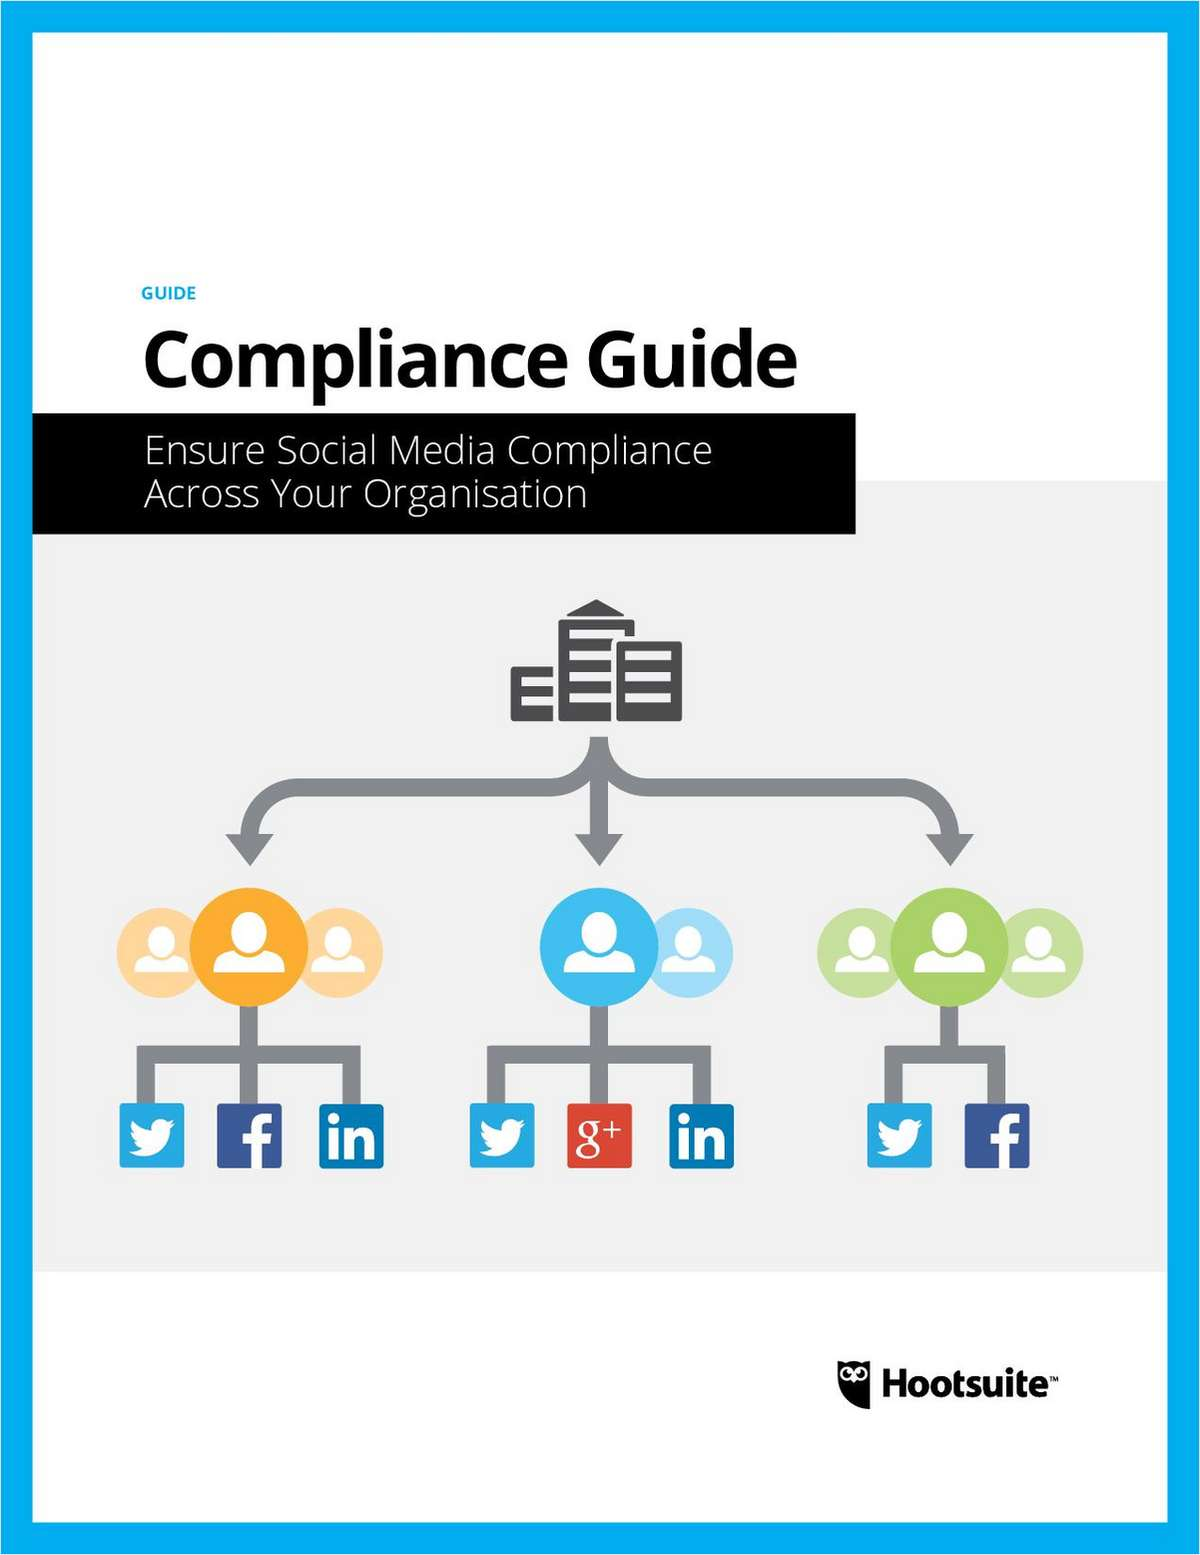 Ensure Social Media Compliance Across Your Organisation